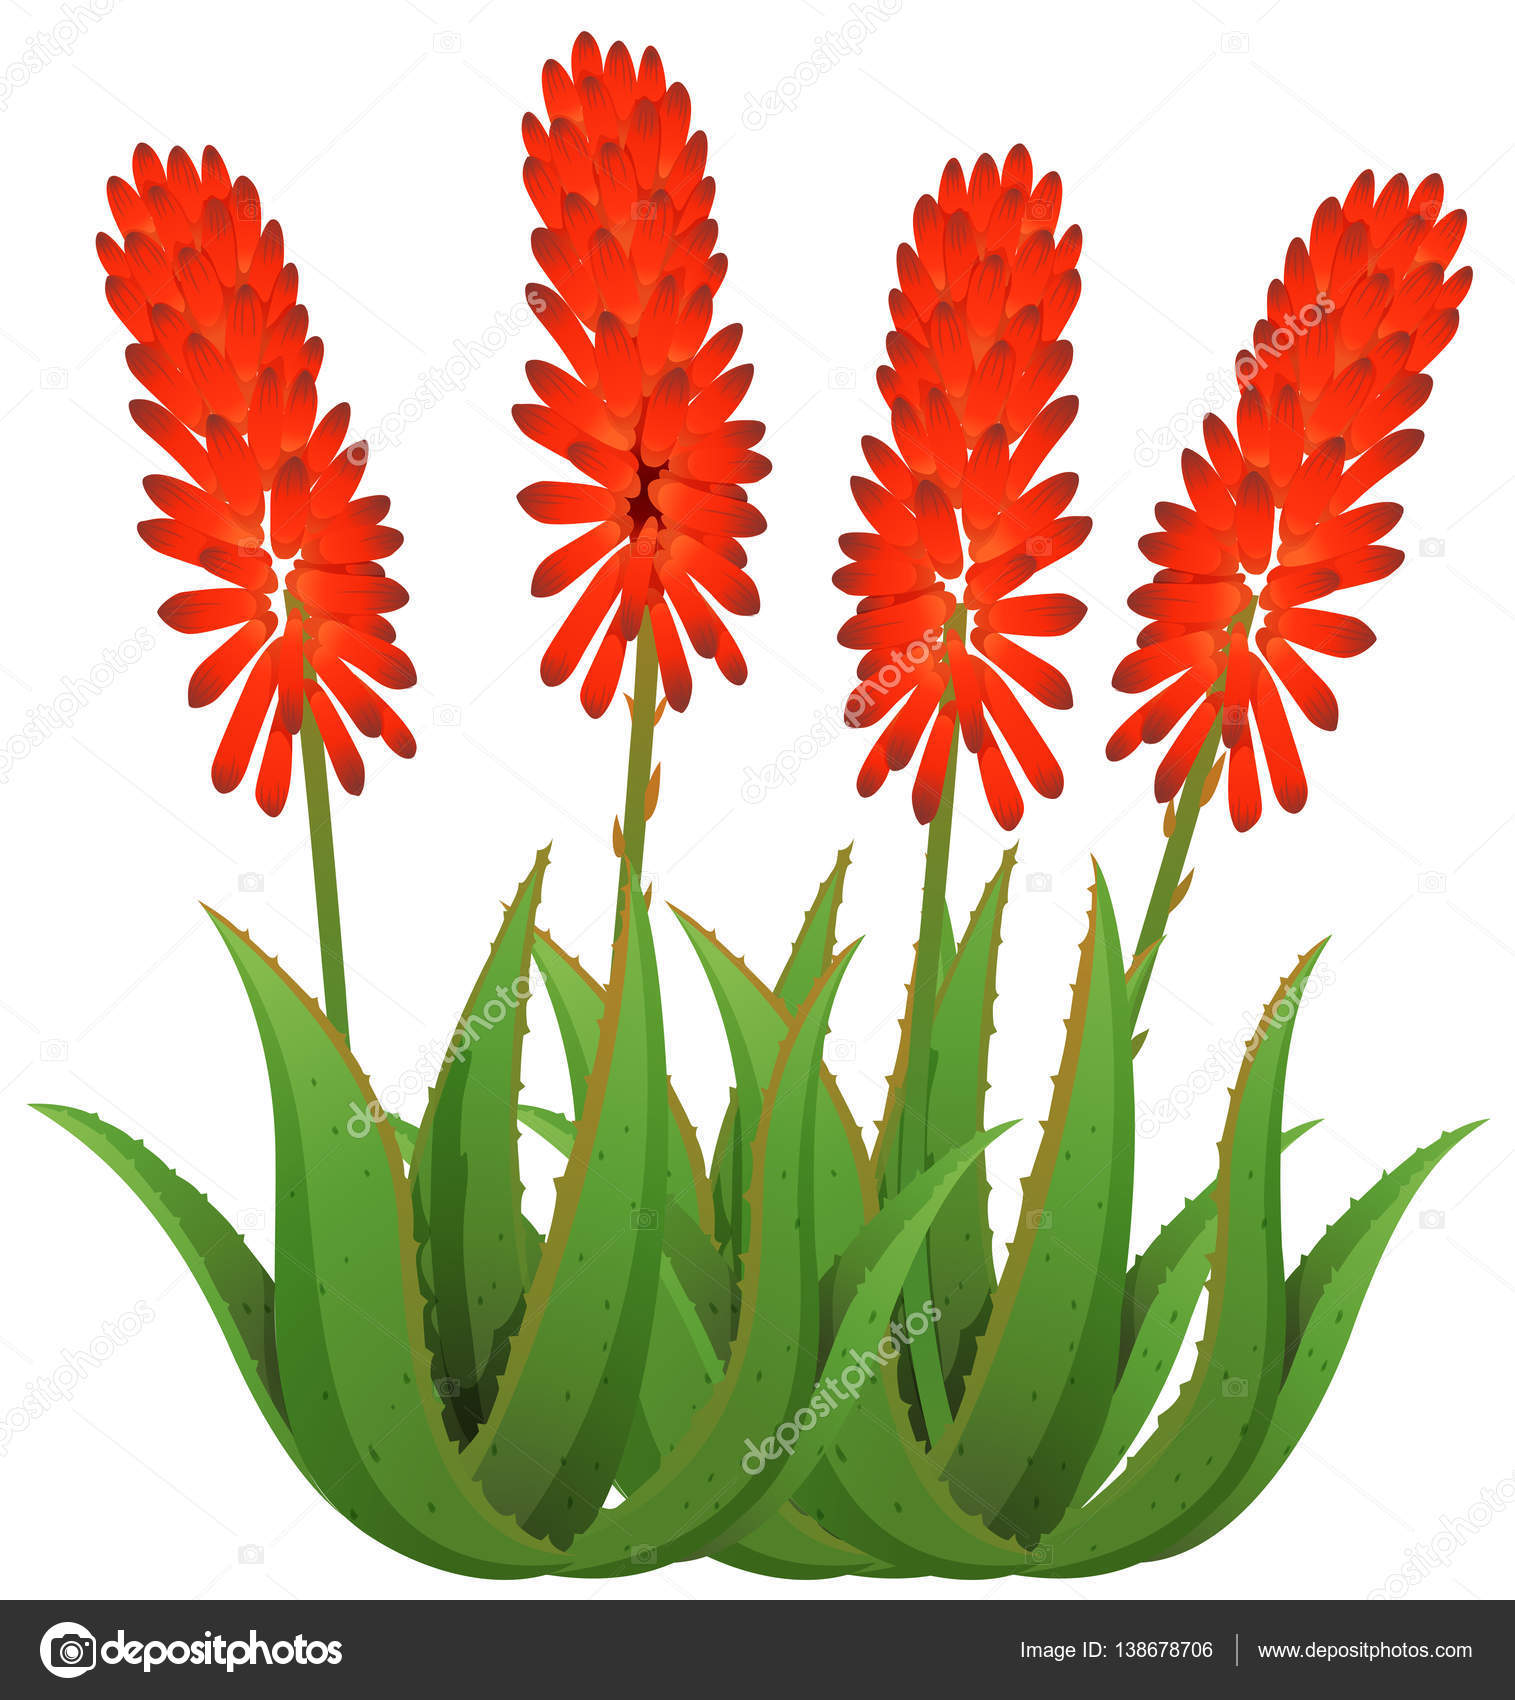 Aloe vera flowers in red color — Stock Vector © interactimages ...